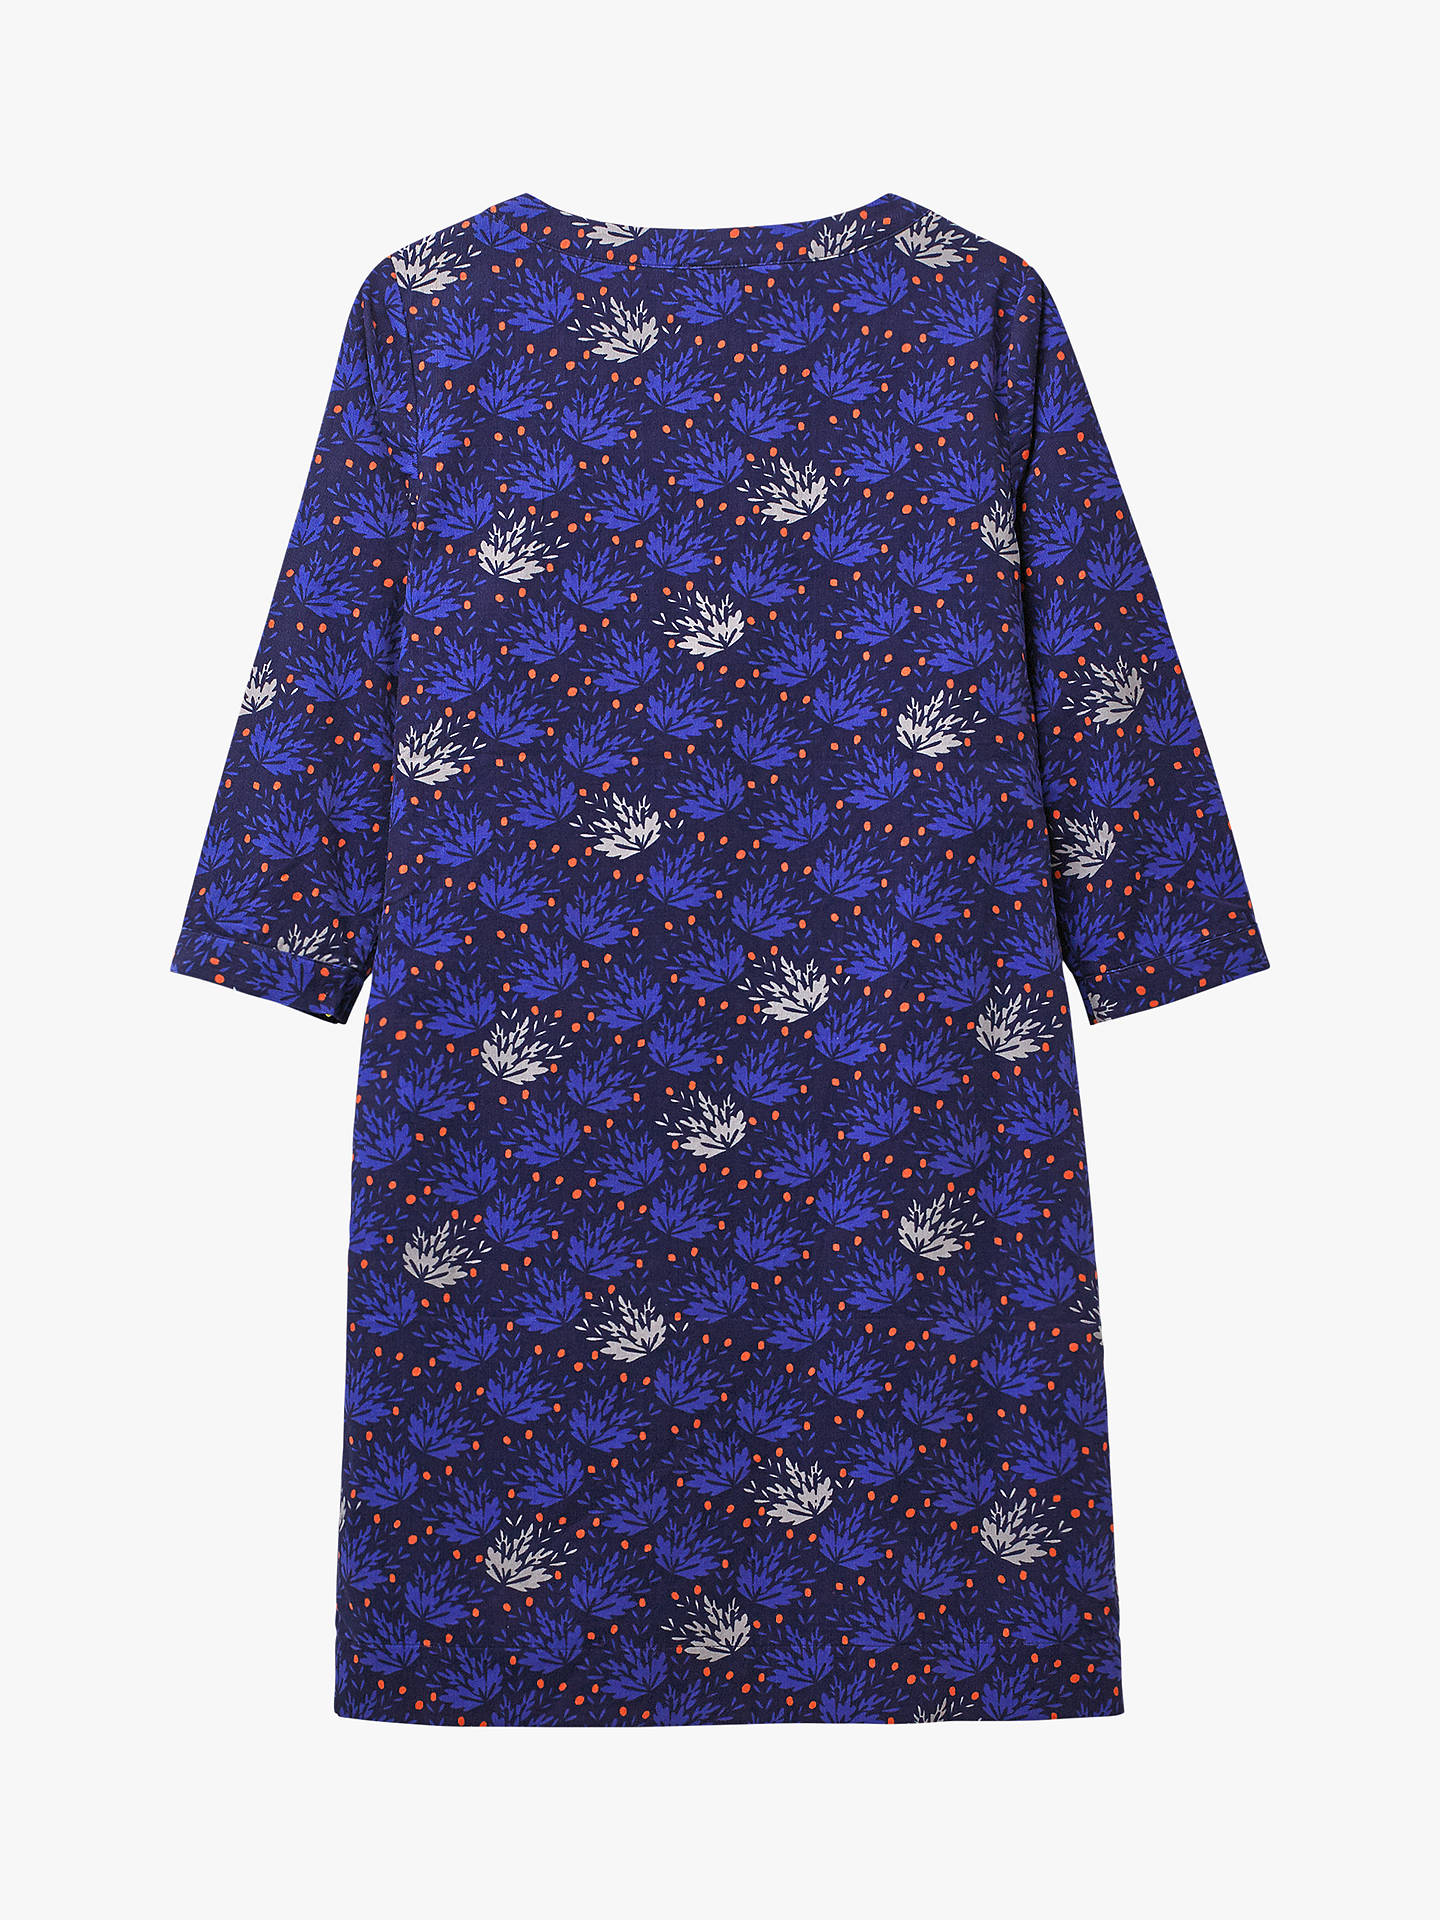 BuyWhite Stuff Petra Leaf Print Cord Tunic Dress, Blue/Multi, 16 Online at johnlewis.com